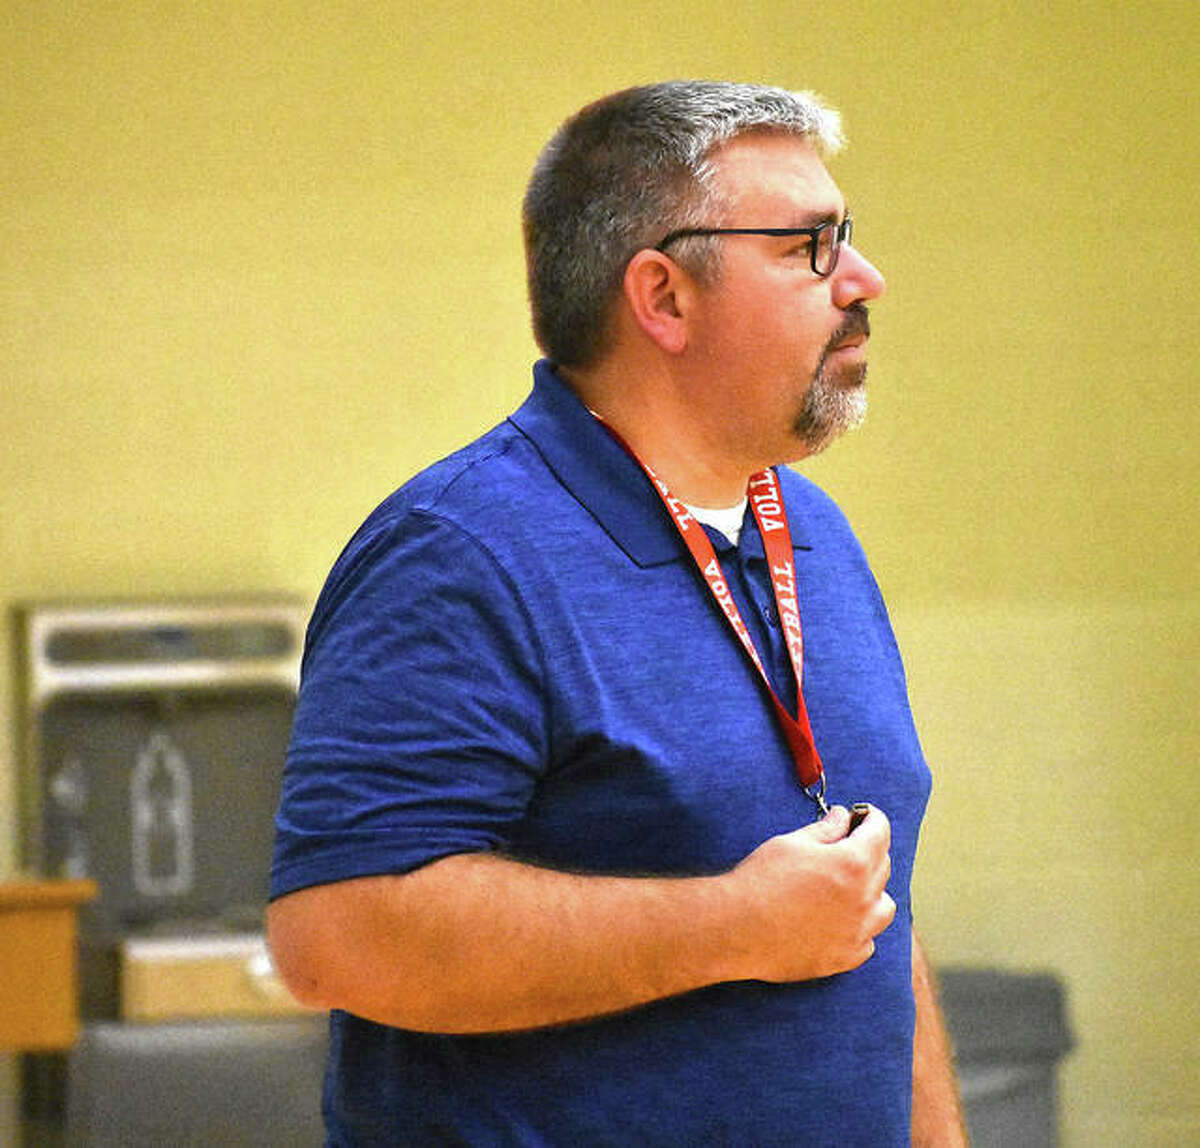 FMCHS coach Paul Vieth watches from the sideline during a scrimmage on Tuesday.